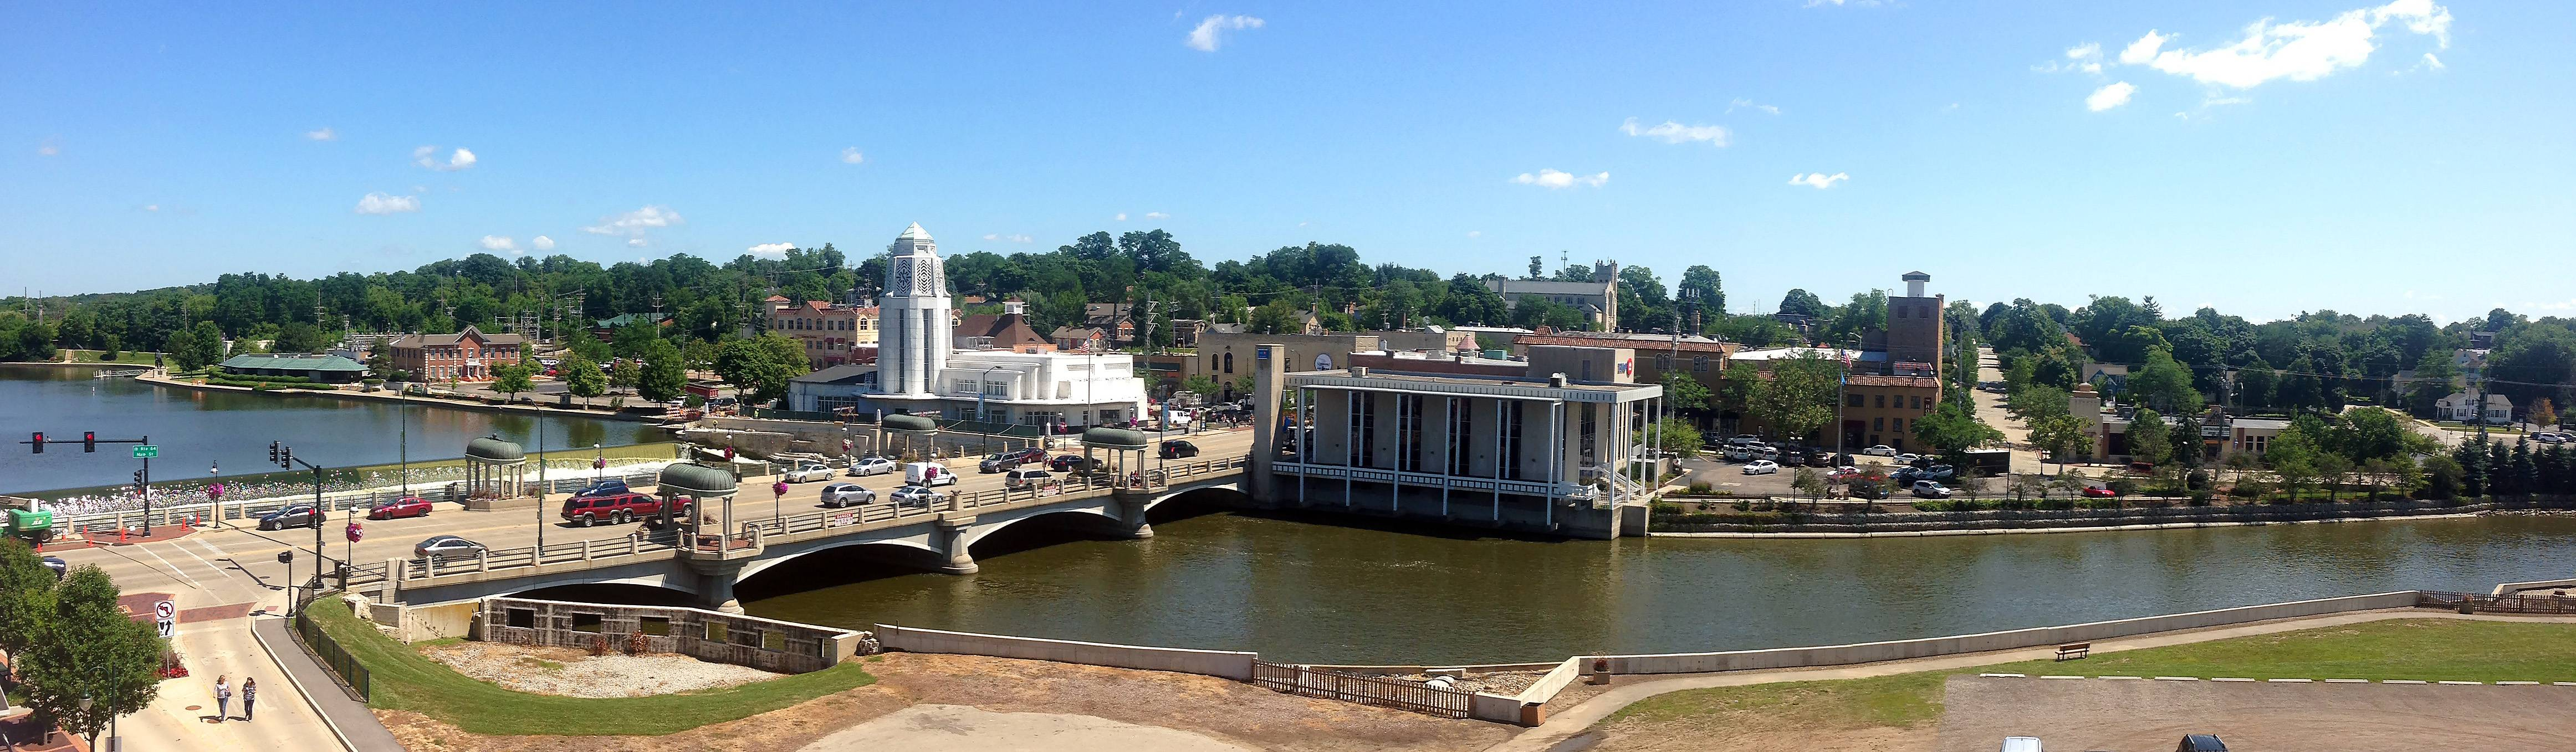 Picture this: The St. Charles Municipal Center and police station being removed to make way for sparkling riverfront retail locations and restaurants built as part of a riverwalk mecca with water taxis shuffling customers from location to location. That's just one suggestion sent to Dave Heun after he asked readers for ideas about what St. Charles' biggest headaches are.